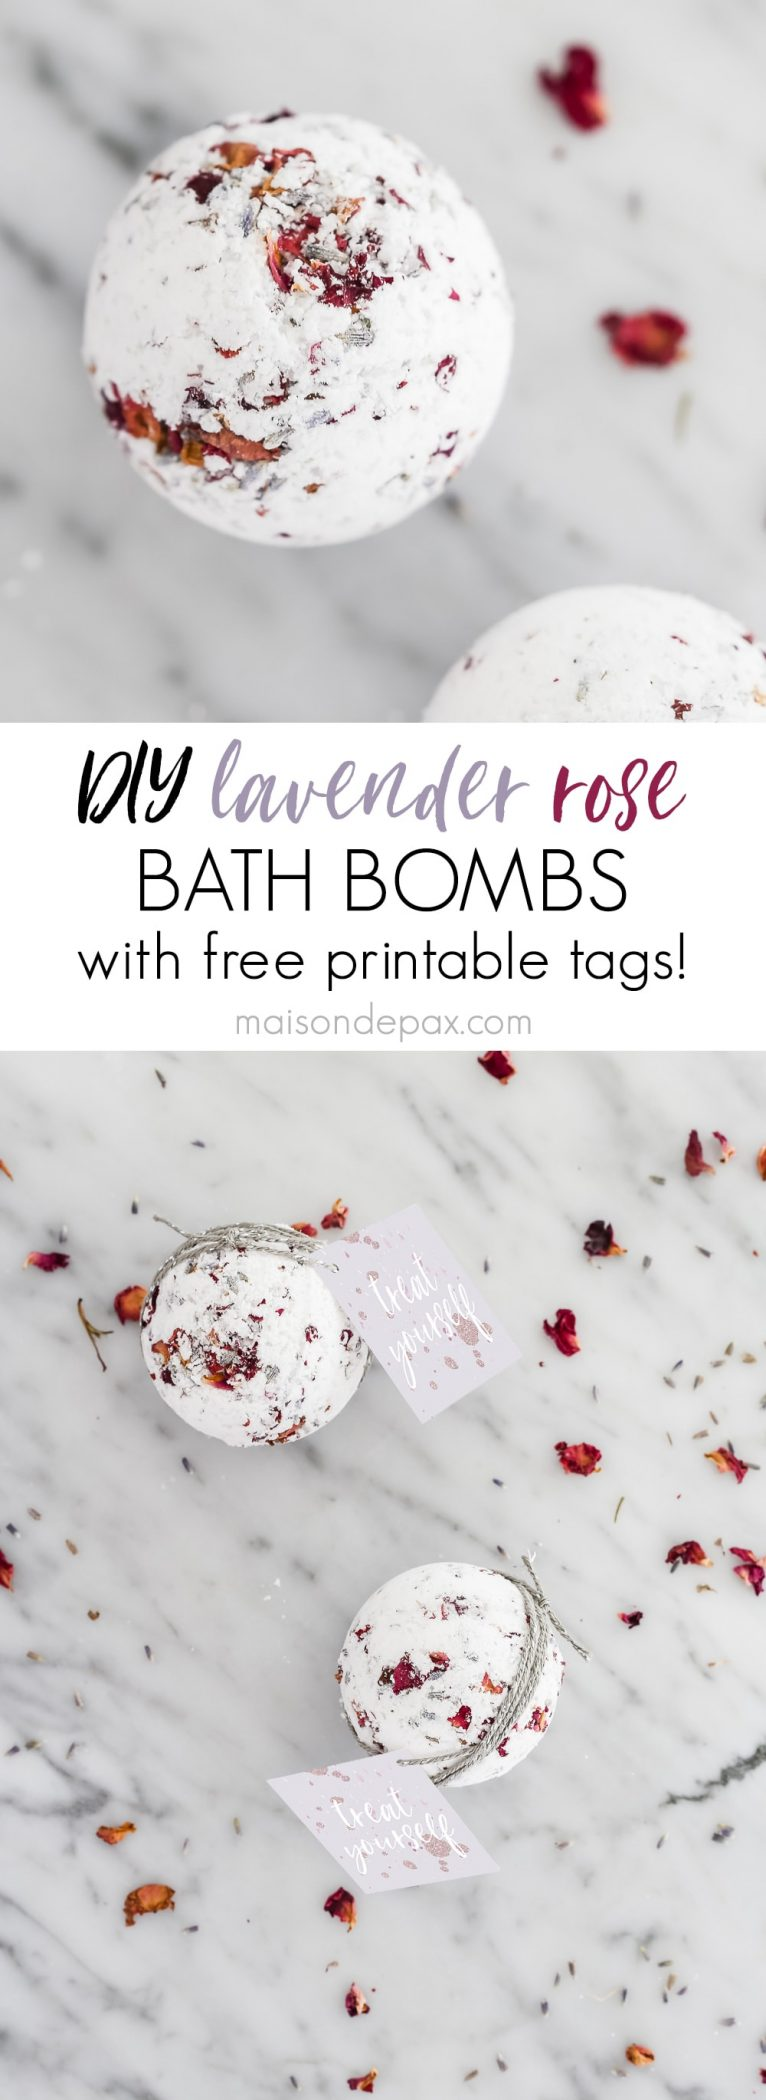 Lavender Rose Bath Bombs collage: these make the perfect handmade, affordable gifts for Valentine's Day, birthdays, Mother's Day, Christmas, and more!  Find out how to make your own bath bombs with this step by step tutorial. #bathbomb #bathbombrecipe #lavenderrose #lavendereucalyptus #lavender #spa #freeprintable #valentines #handmade #handmadegifts #essentialoils